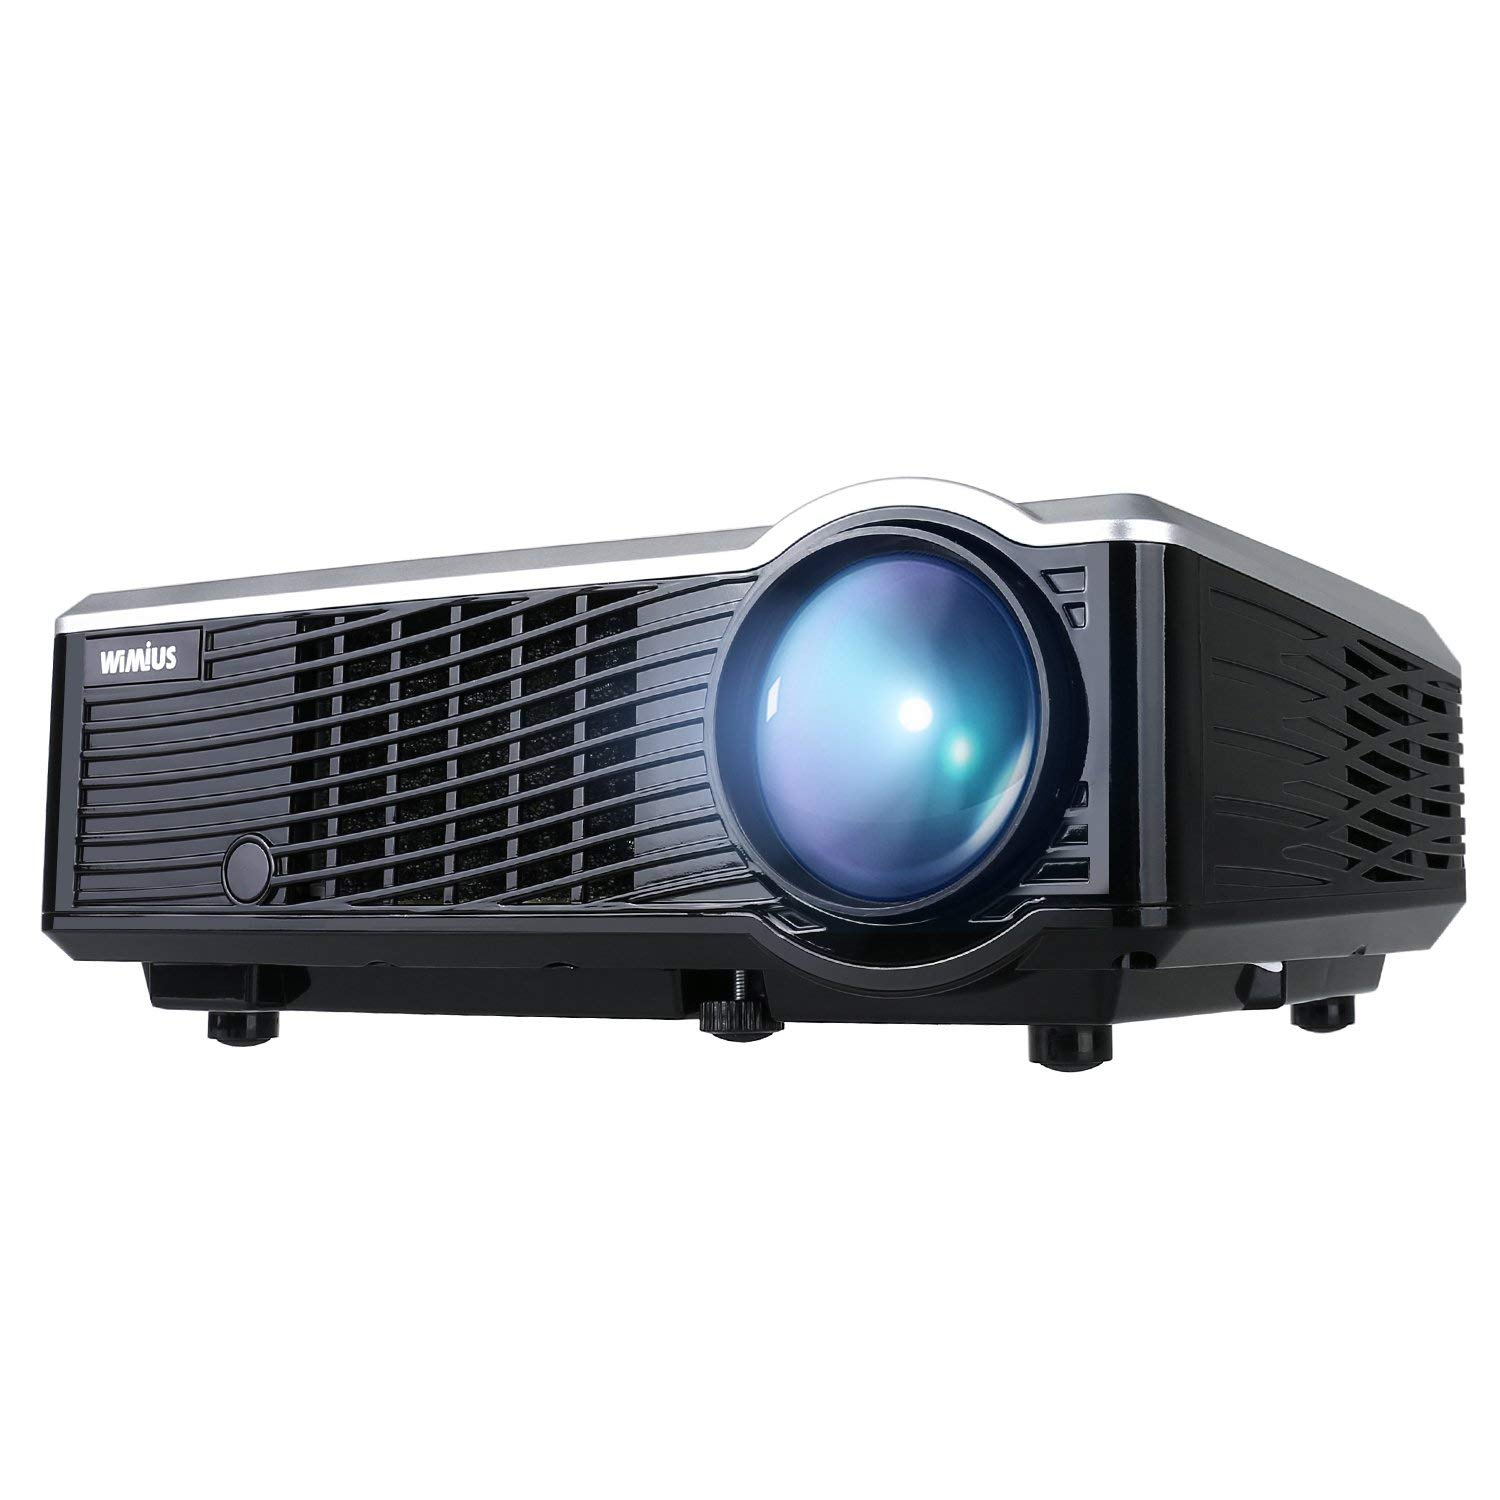 WiMiUS T7 Upgraded Mini Projector